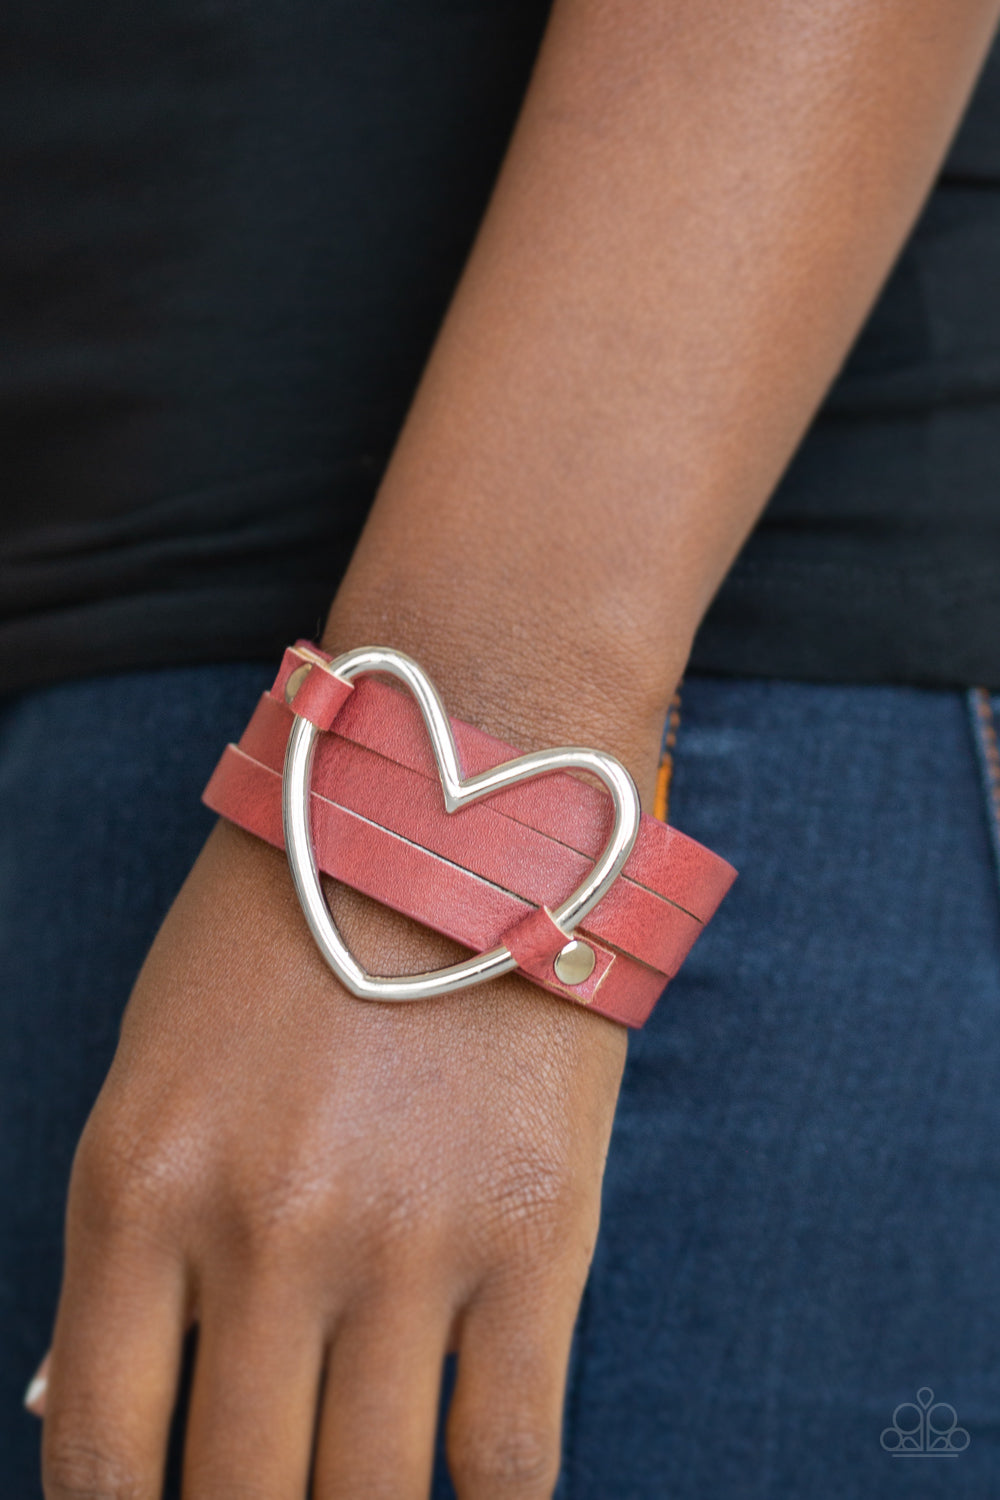 Paparazzi - One Love, One Heart - Red Bracelet - Classy Jewels by Linda